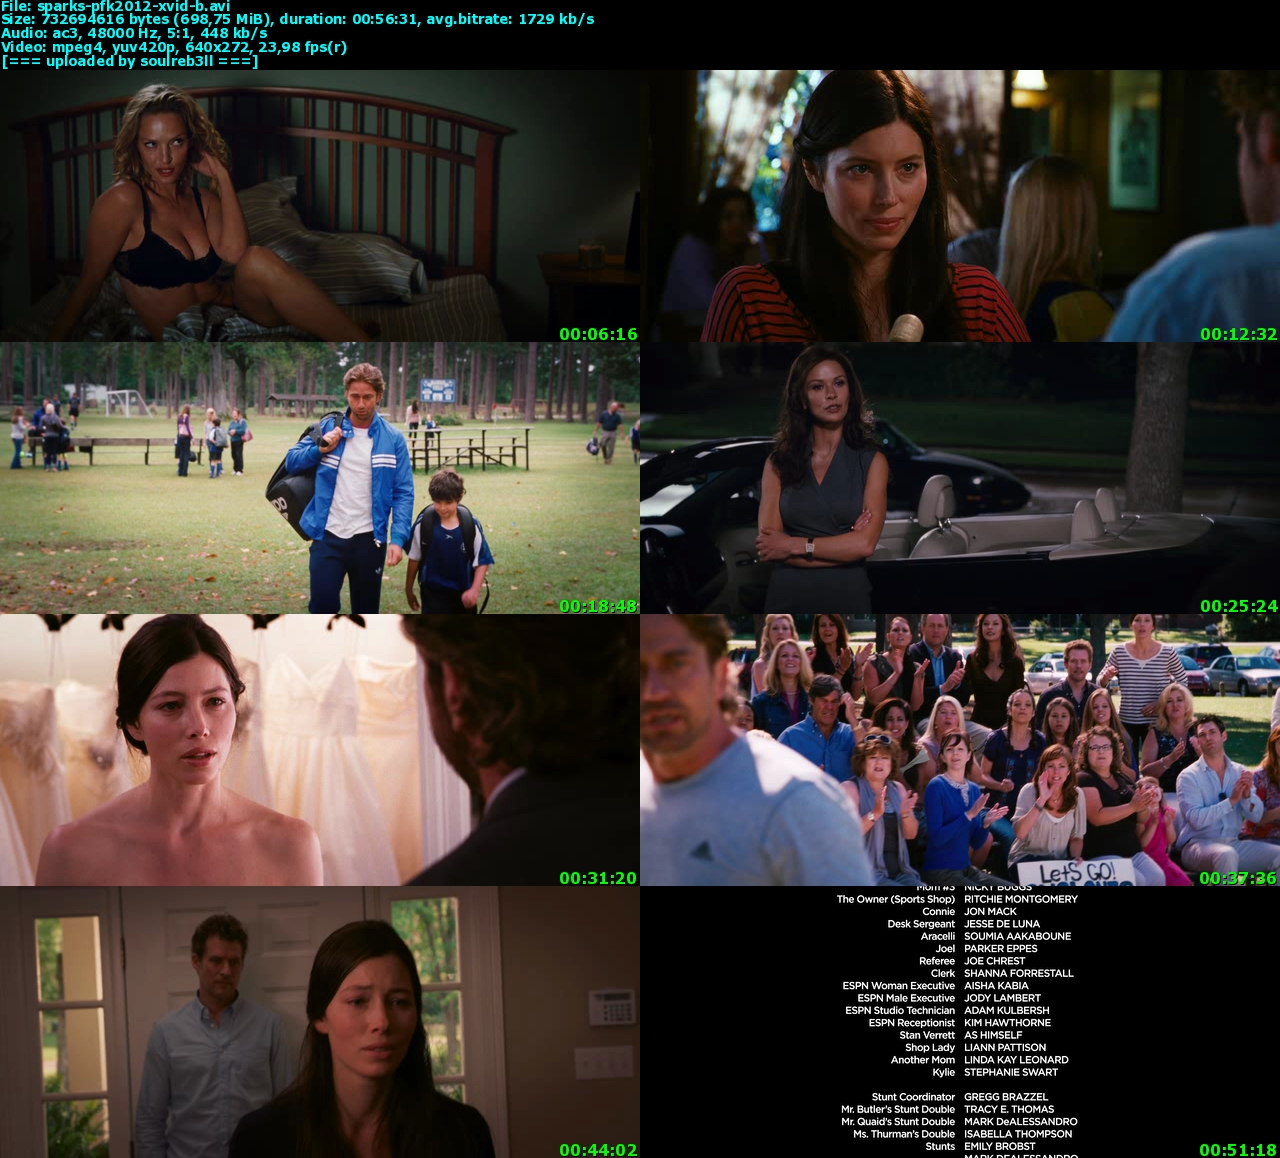 sparks pfk2012 xvid bhdoqx Playing for Keeps   Aşk Oyunu (2012) BDRip XviD indir